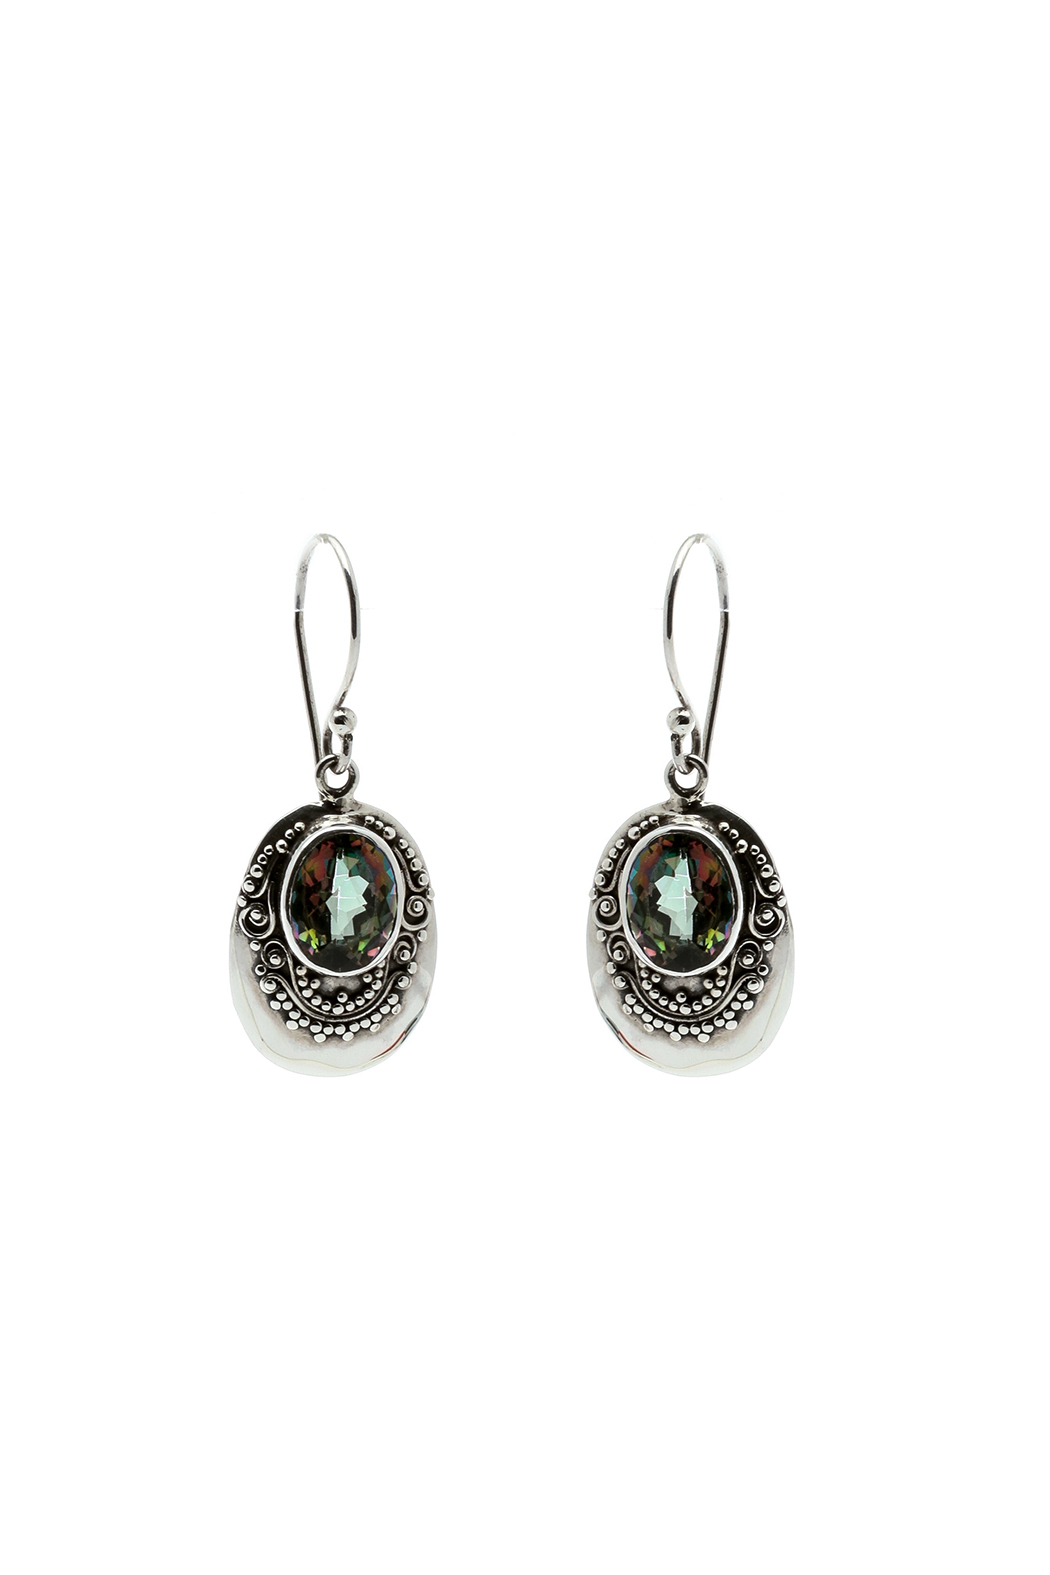 lollipop drop earring earrings deals latest genuine mystic cttw goods groupon sterling topaz silver gg